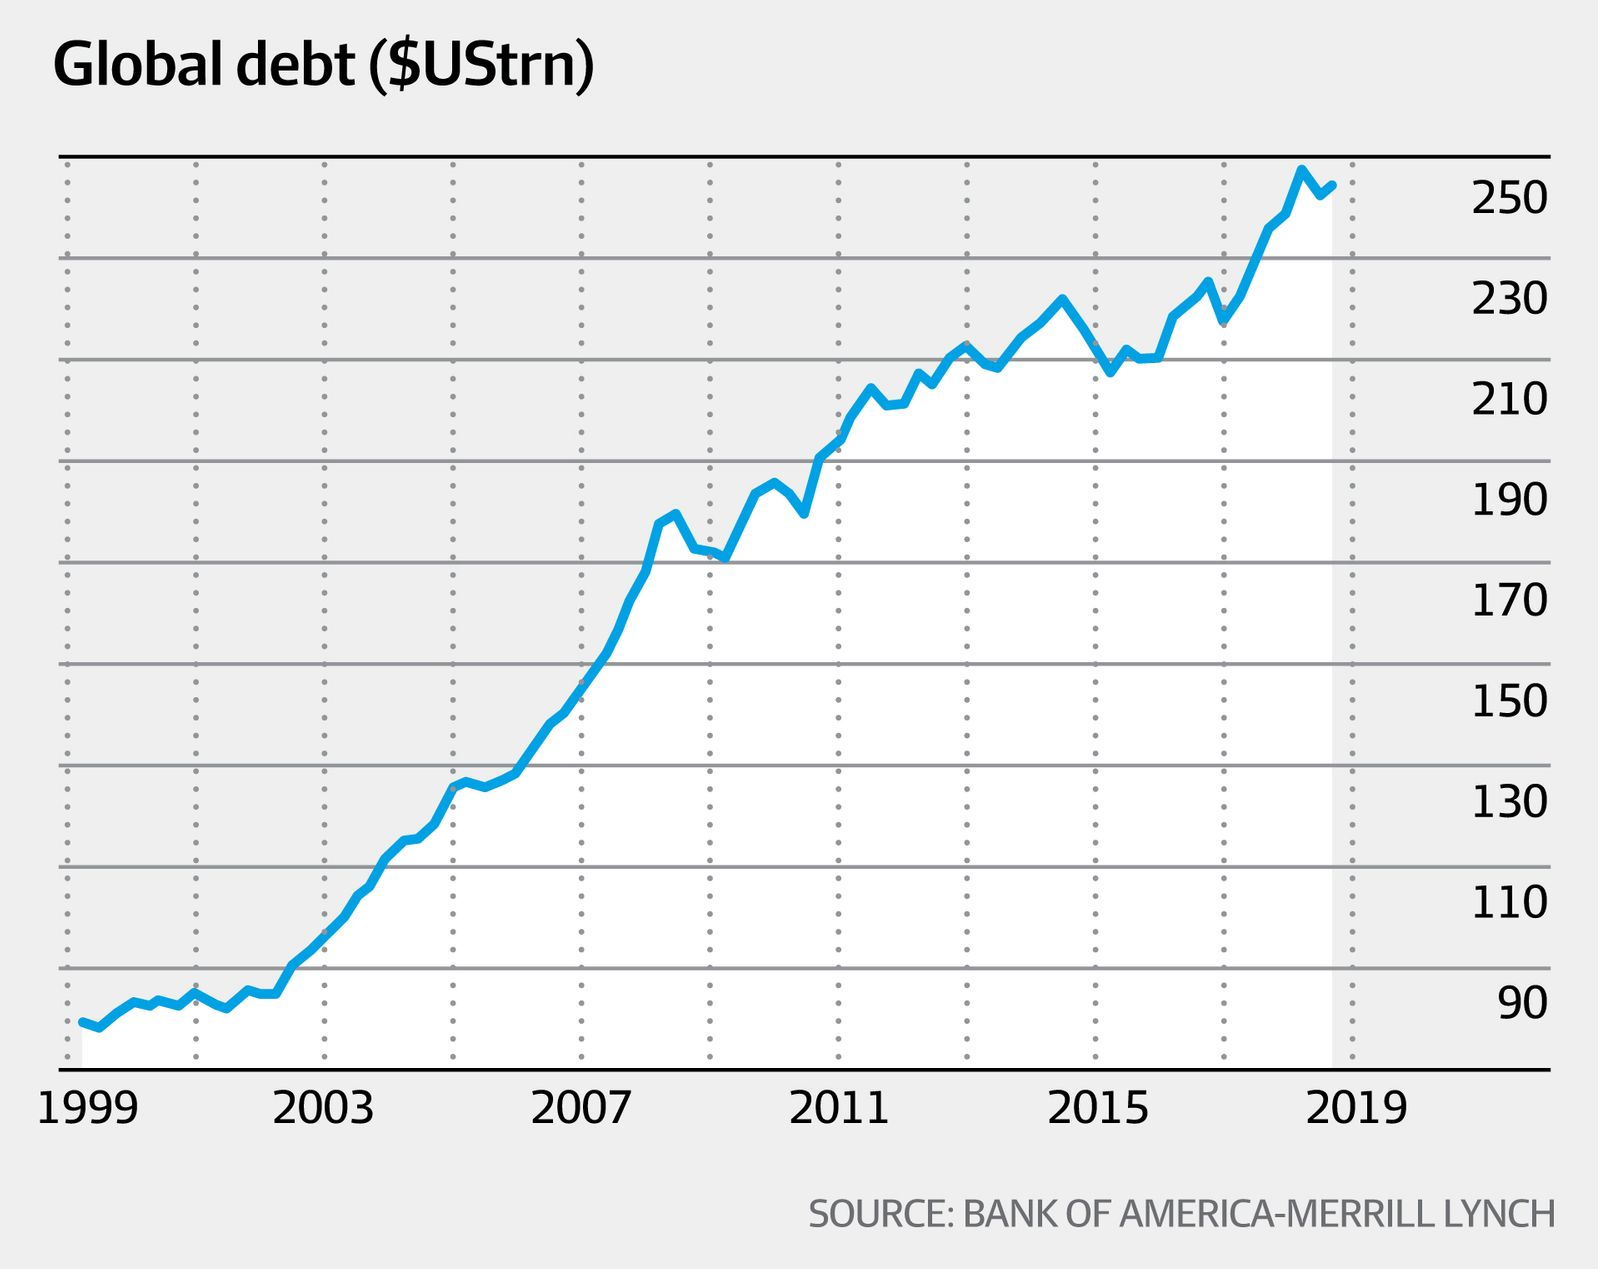 Global debt (Bank or America-Merrill Lynch, AFR)